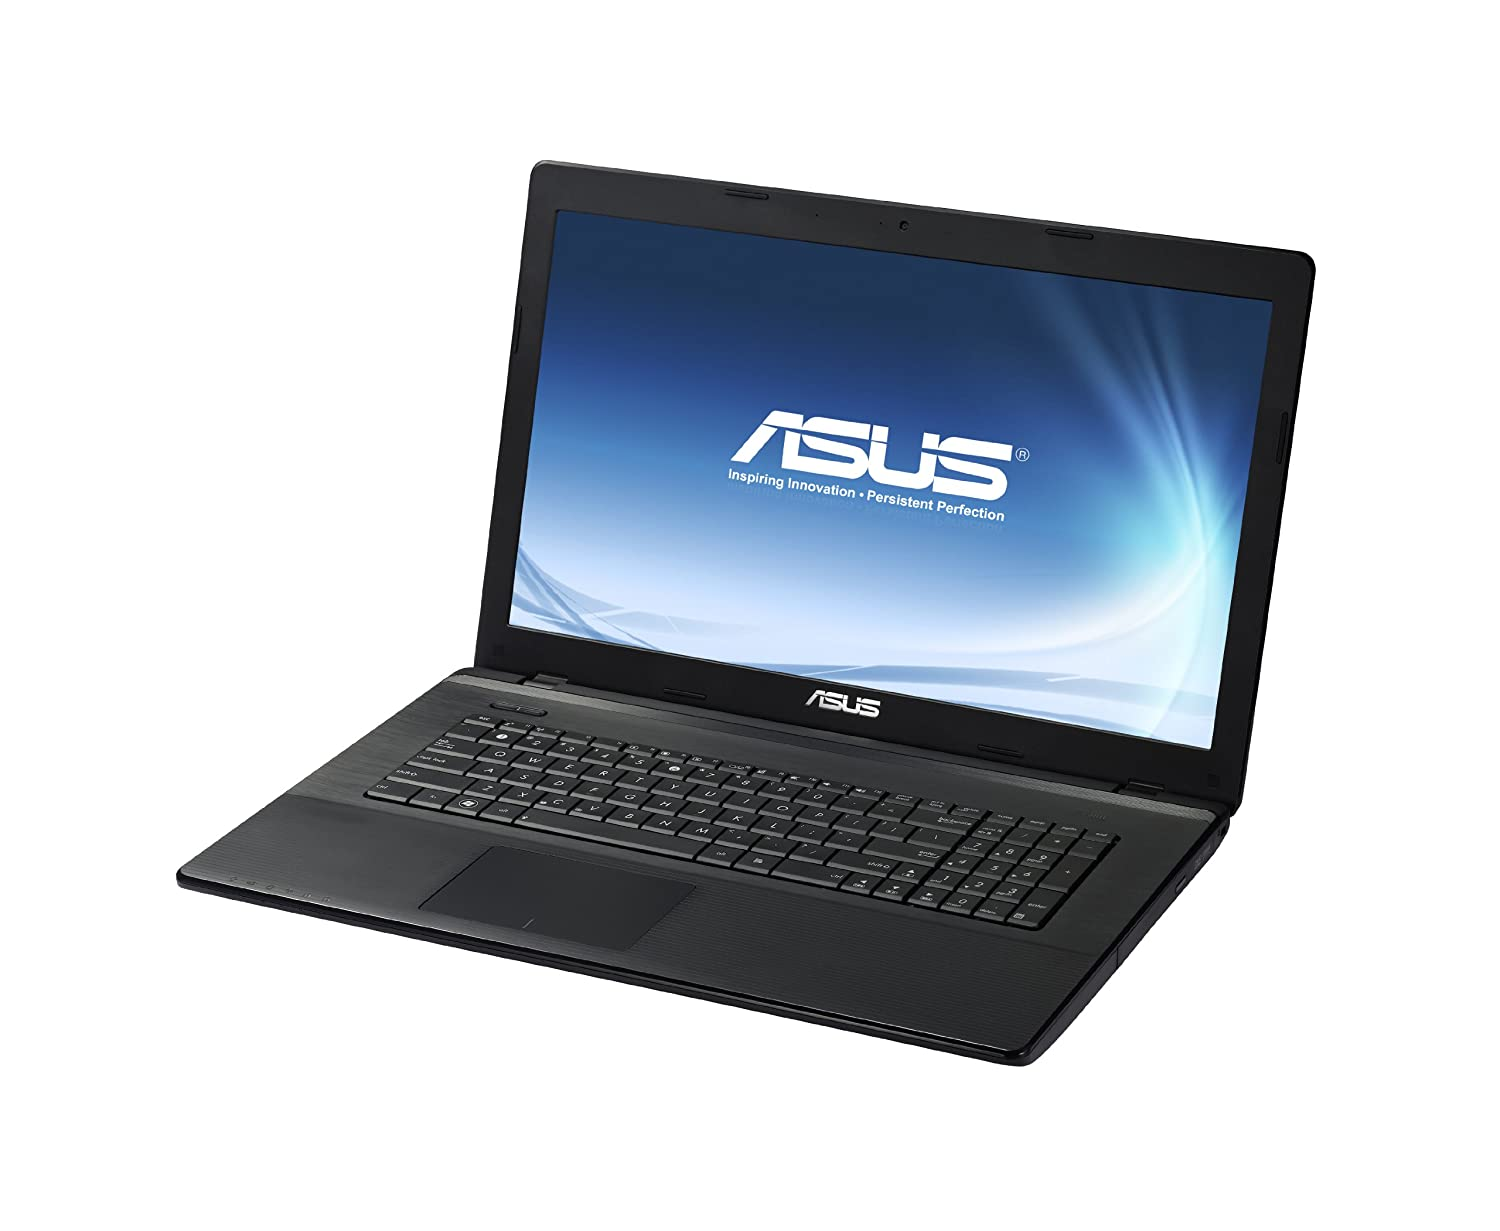 Asus X75VD1 Touchpad Driver Windows 7